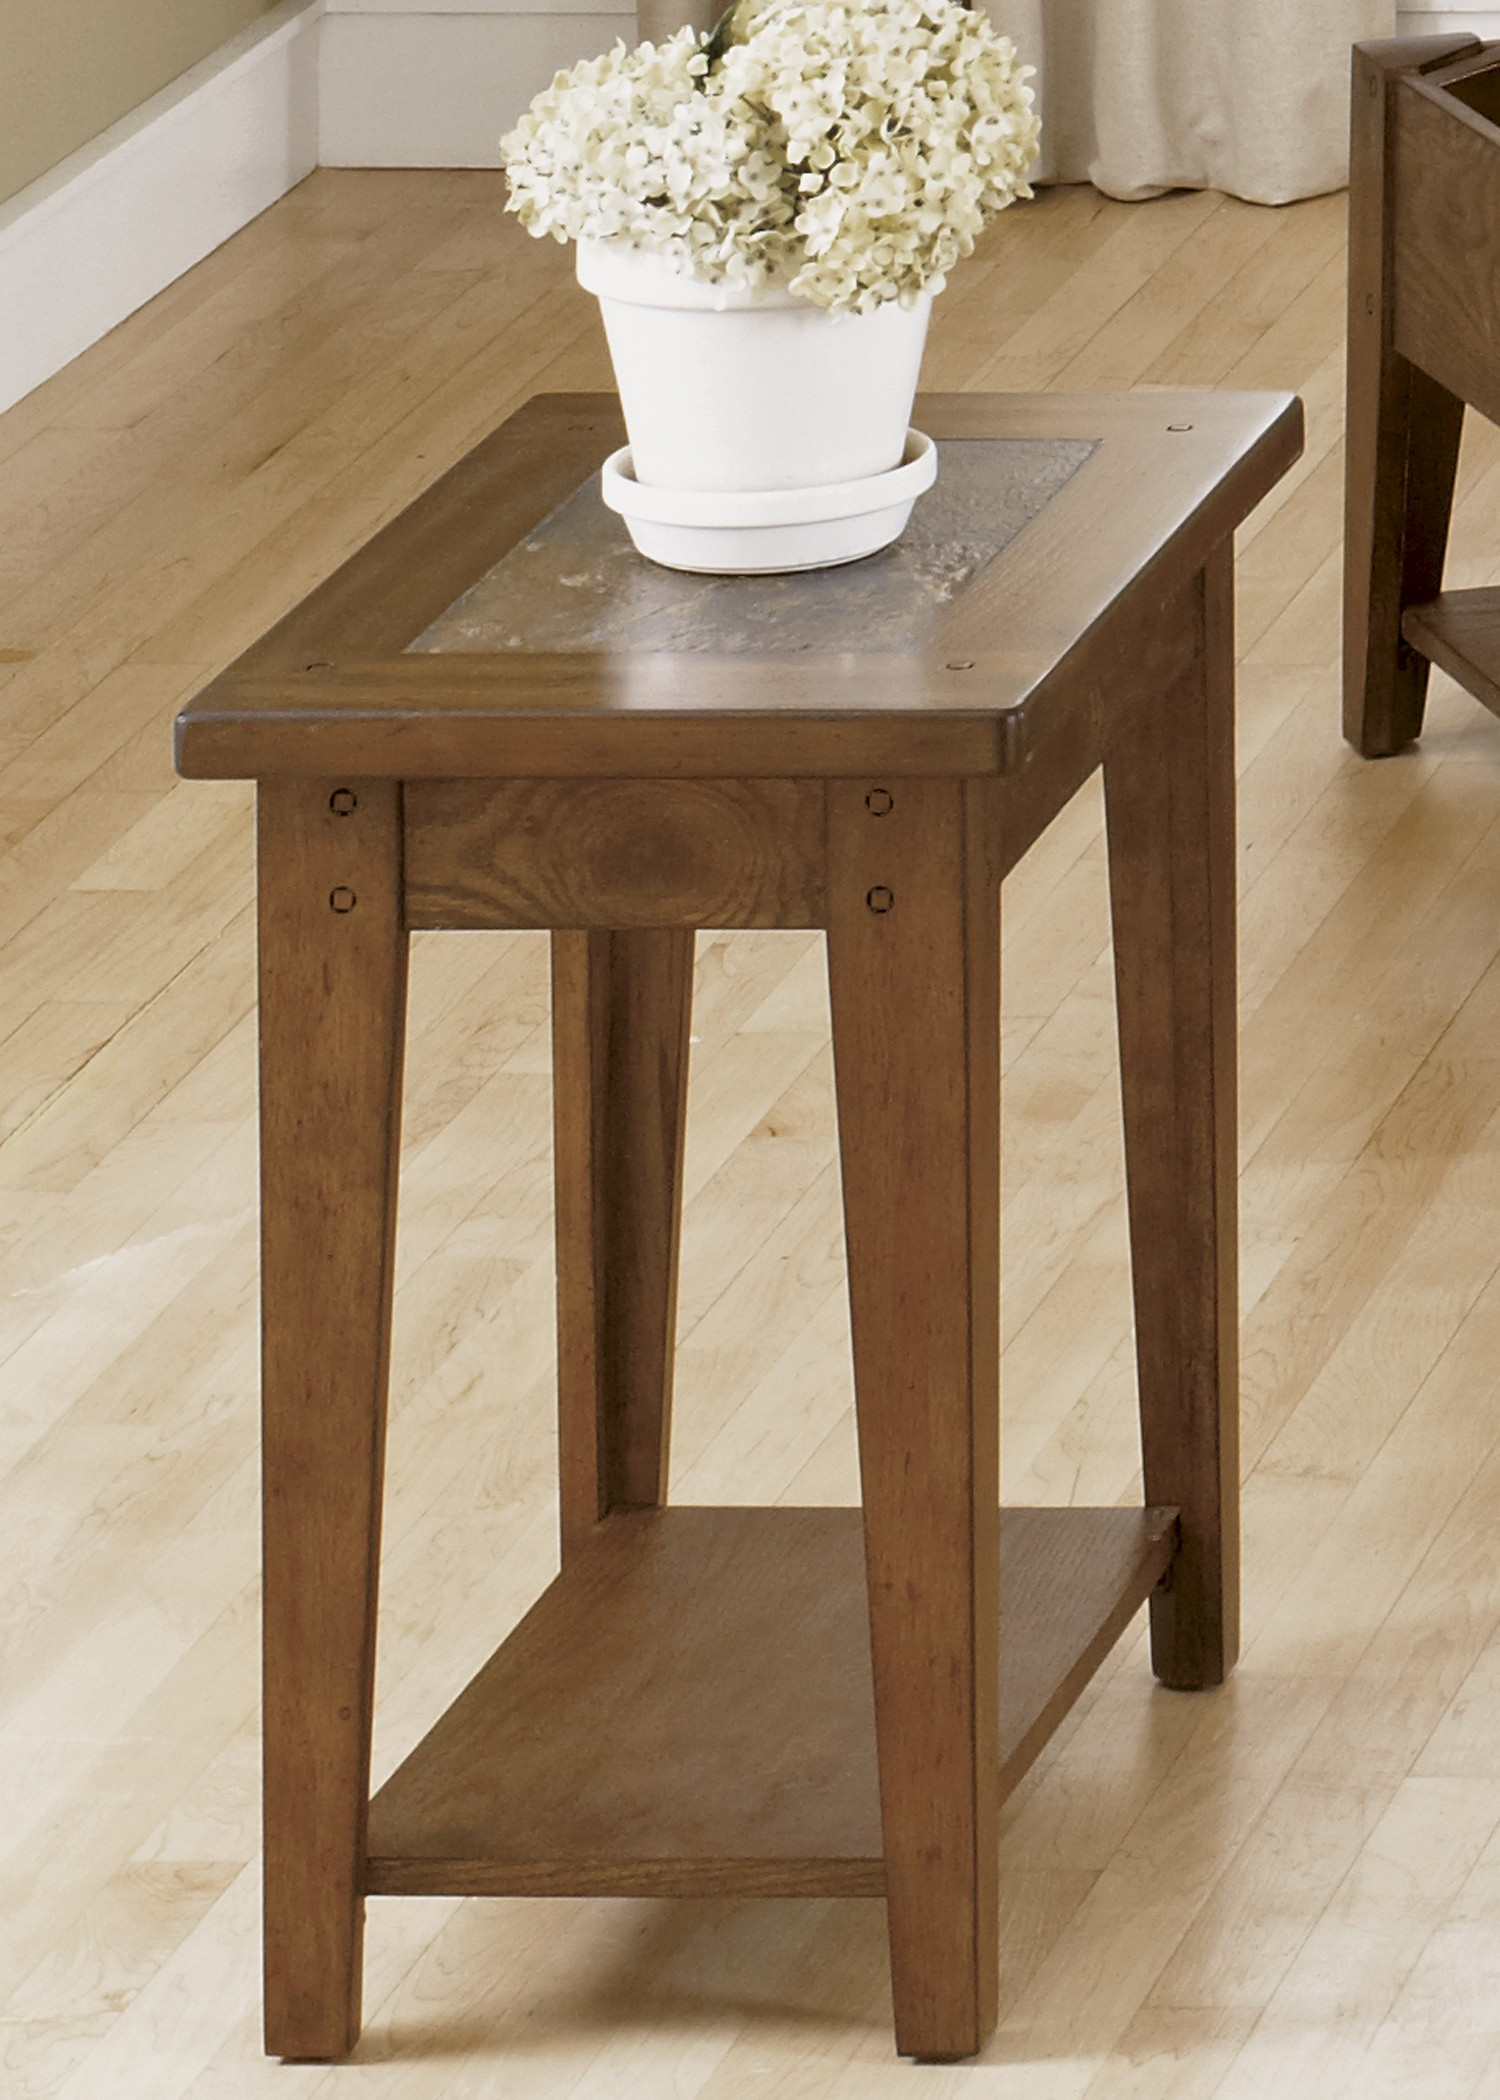 Hearthstone Rustic Oak Chair Side Table From Liberty 382